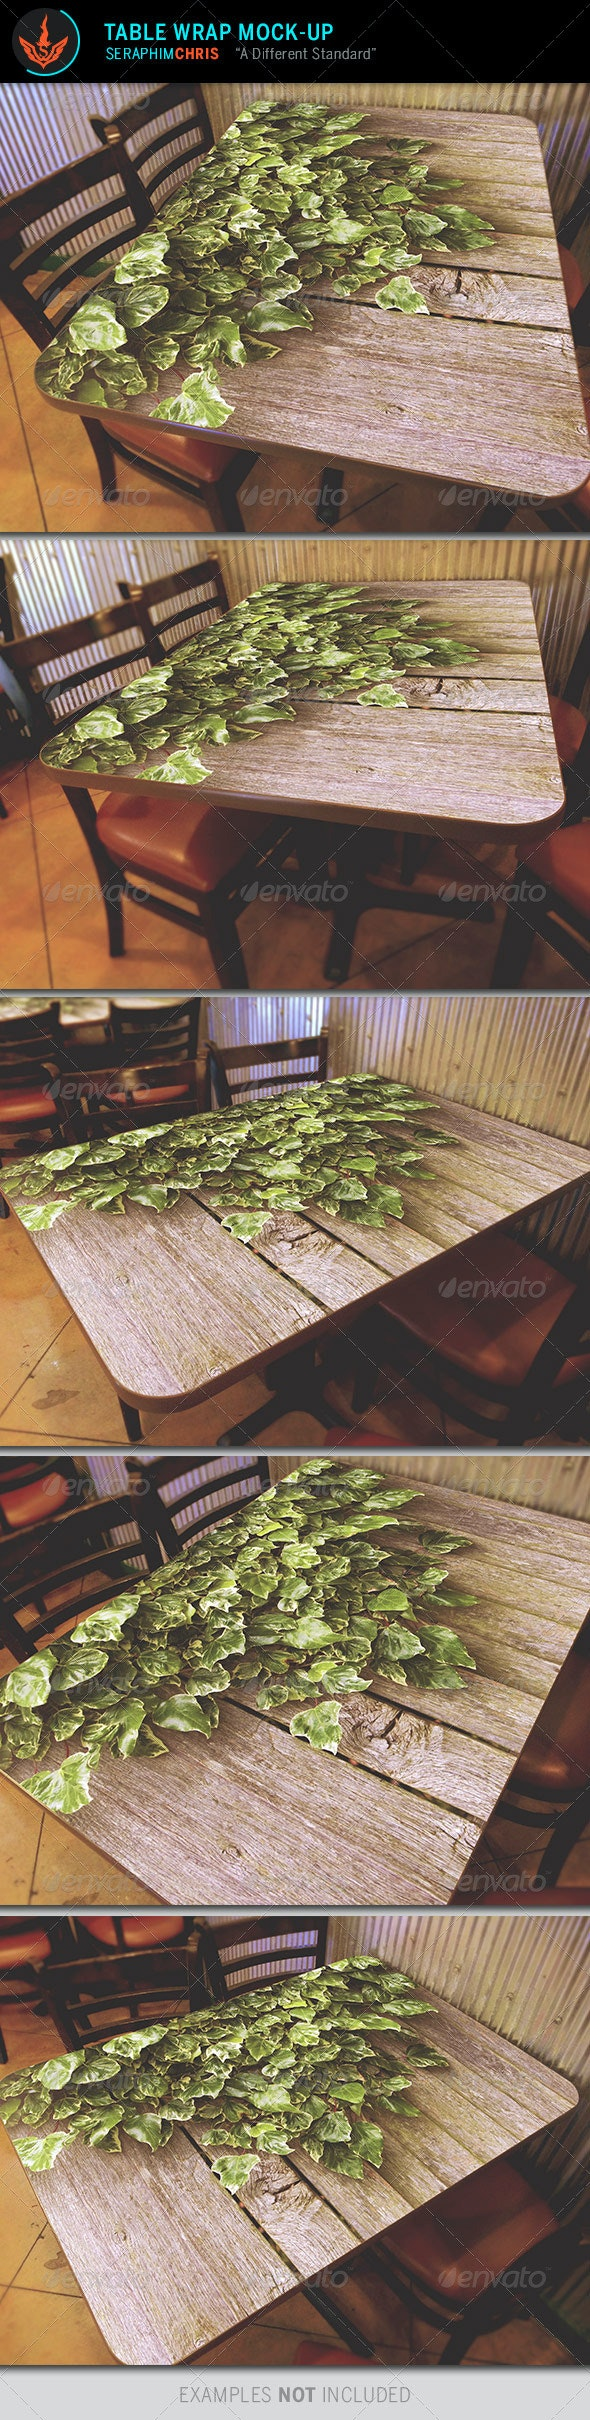 Table Wrap Mock Up Template - Miscellaneous Product Mock-Ups